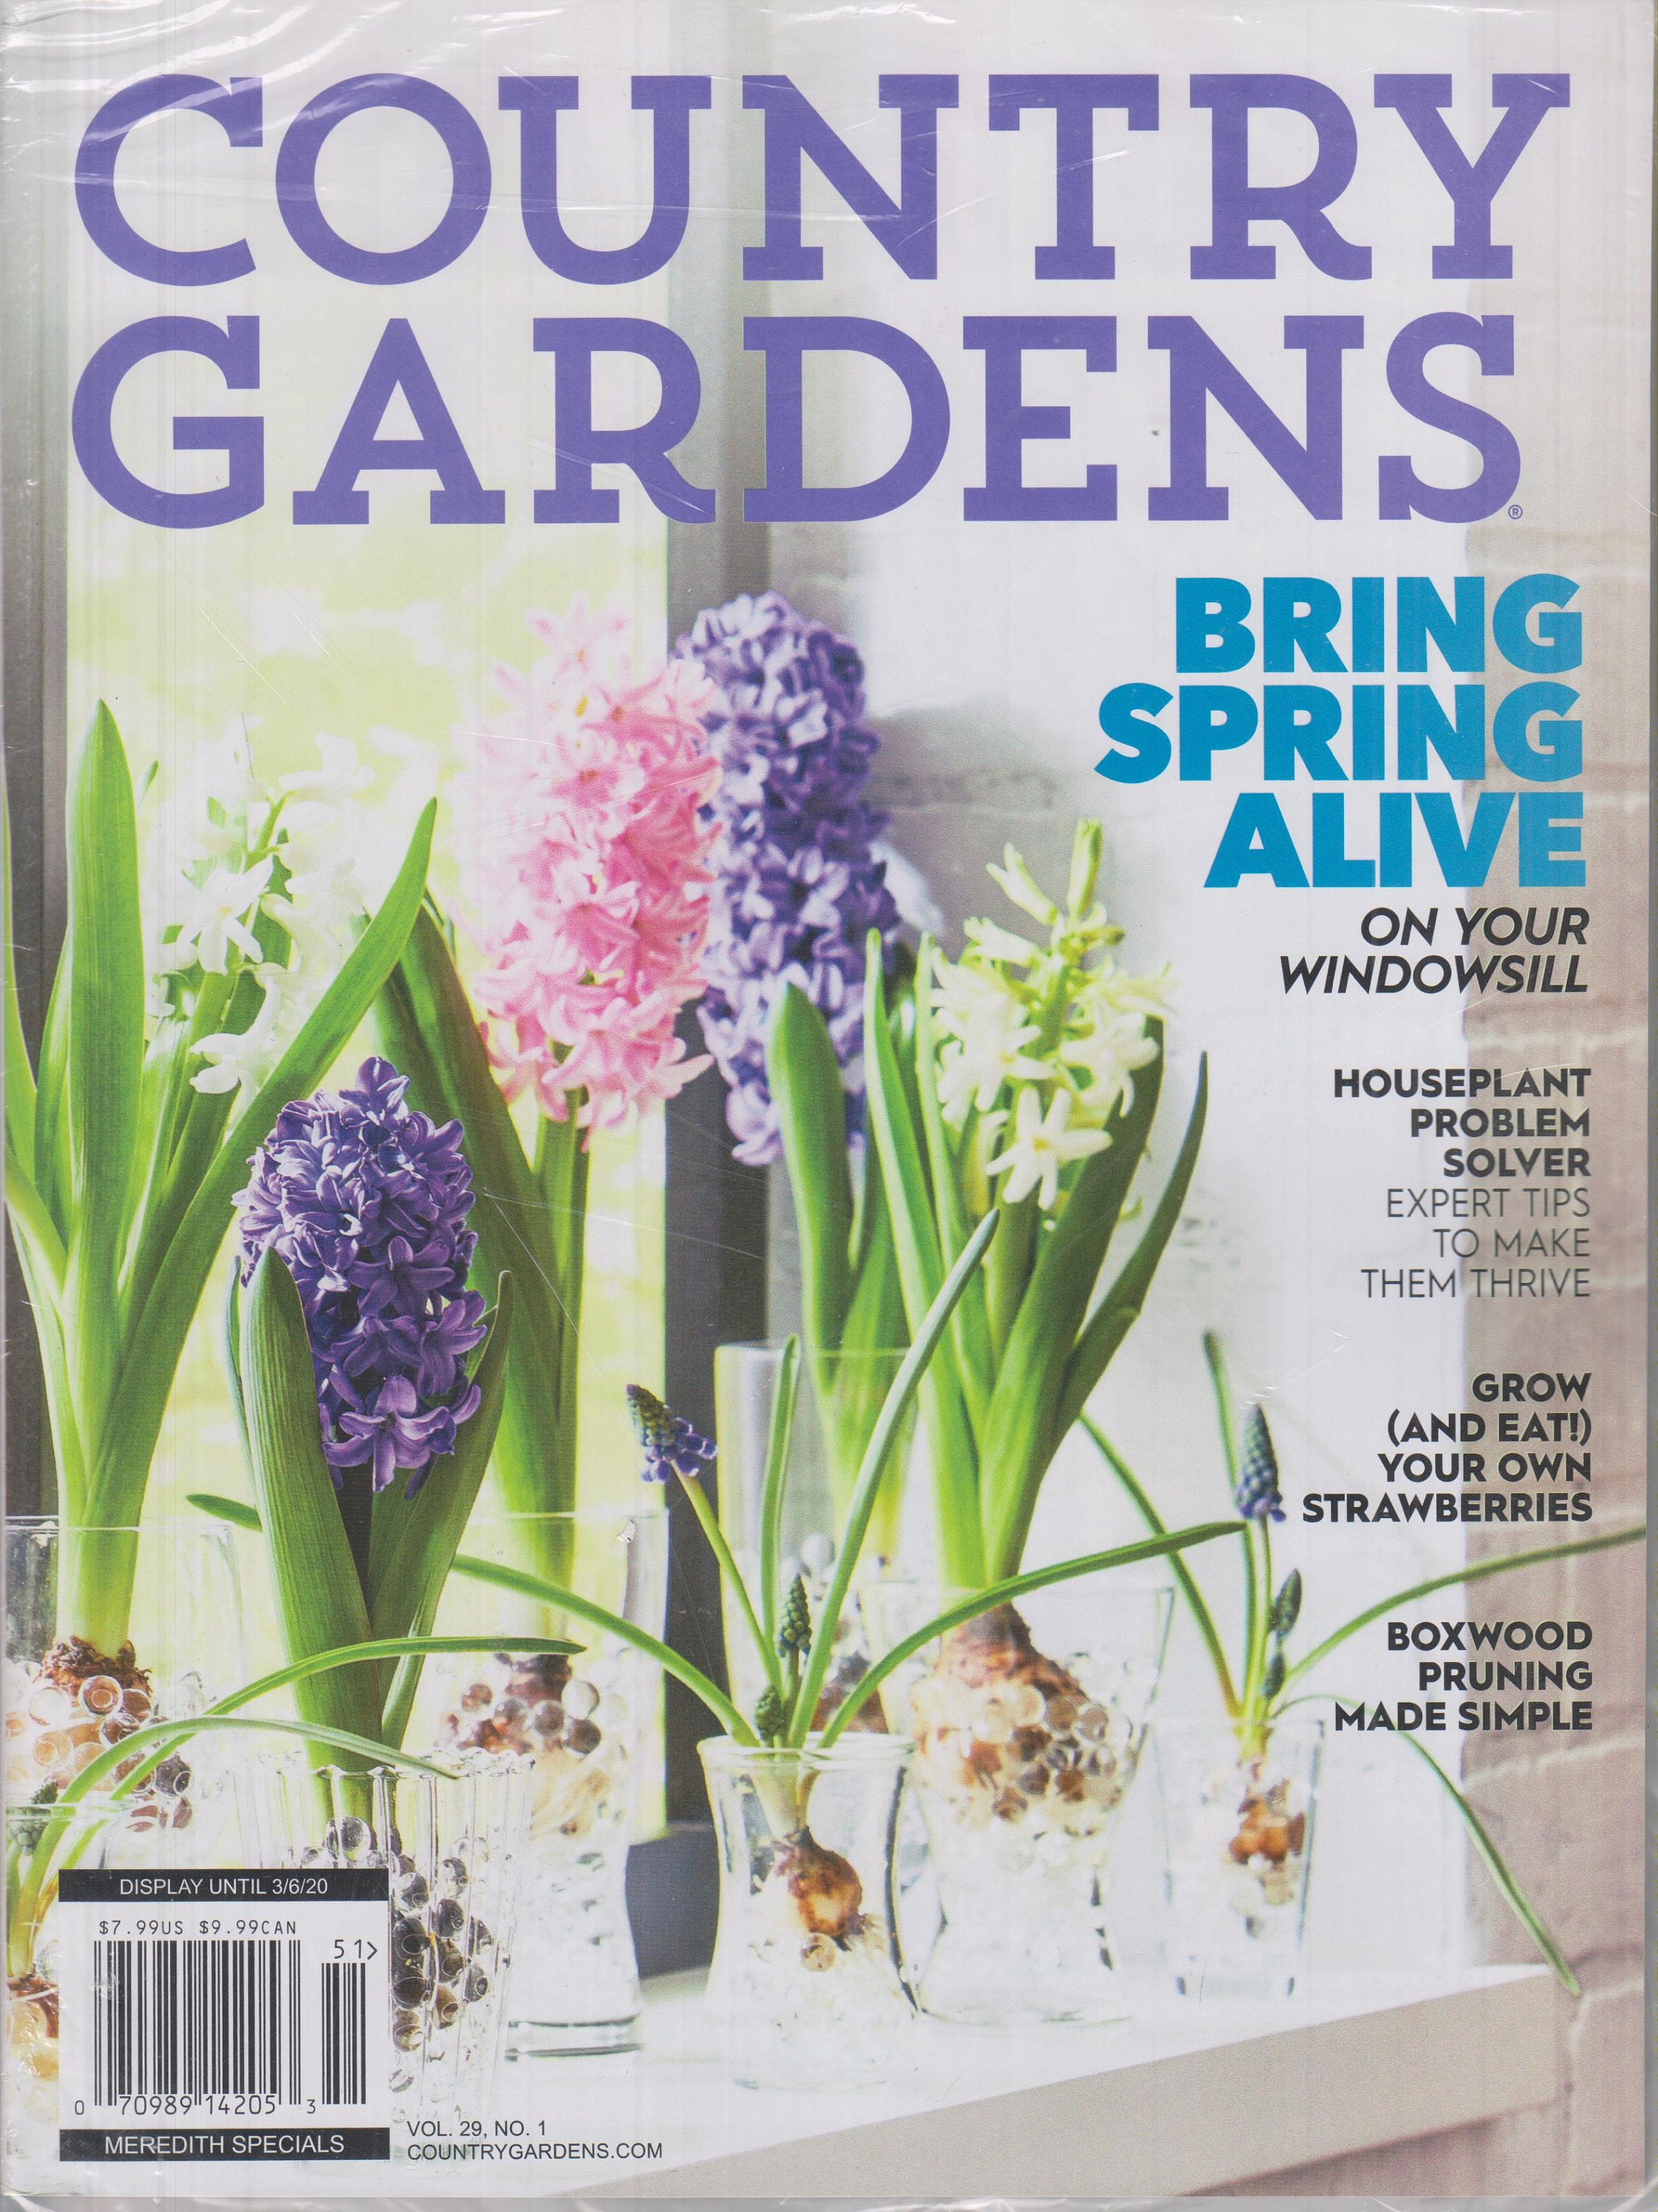 Country Gardens Magazine Early Spring 2020 Bring Spring Alive On